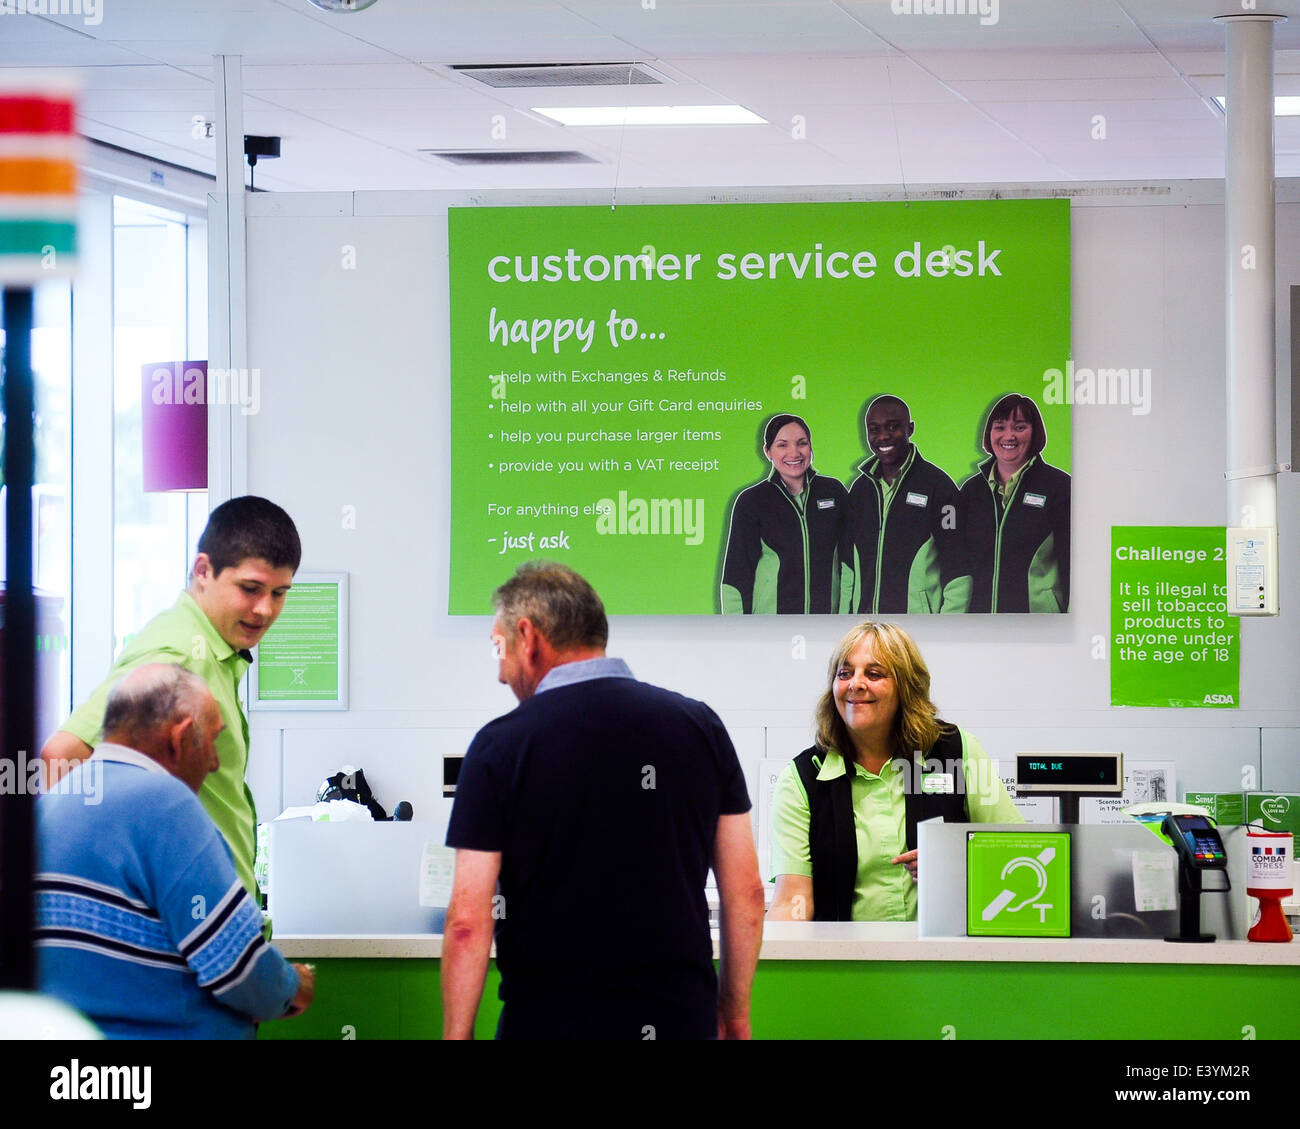 asda direct customer service Asda direct brings items in various categories your way such as electronics, baby, entertainment and more asda money lists various products related to if you prefer using social networking sites to reach asda customer service desk, you can use facebook or their twitter accounts asda contact numbers helpline.